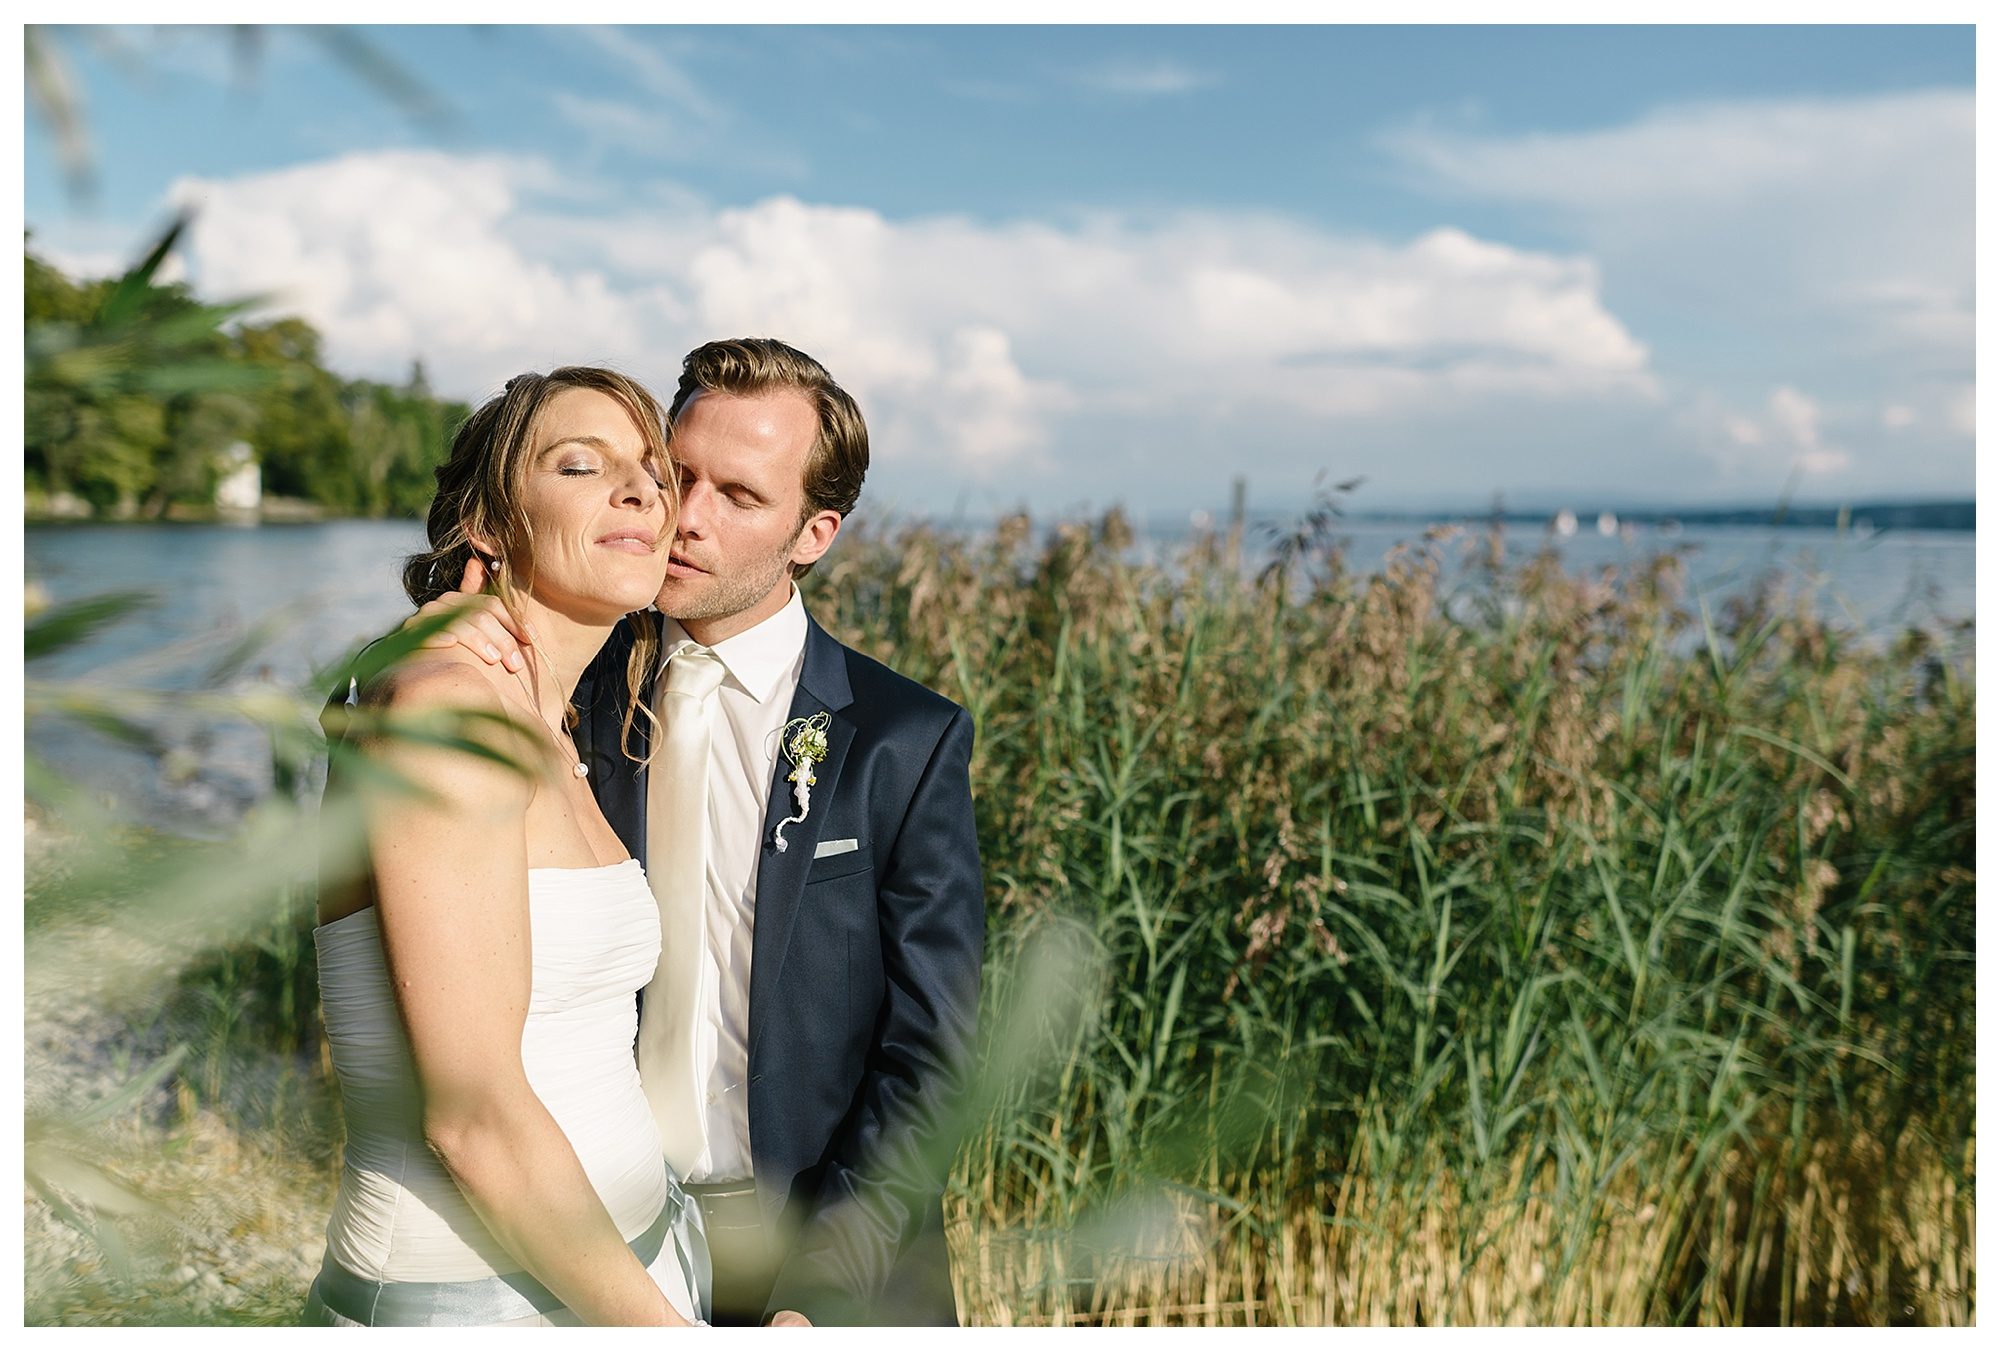 Fotograf Konstanz - Hochzeitsreportage Konstanz Raphael Nicole Elmar Feuerbacher Photography Hochzeit Portrait 42 - Wedding in Constance at Lake of Constance  - 63 -